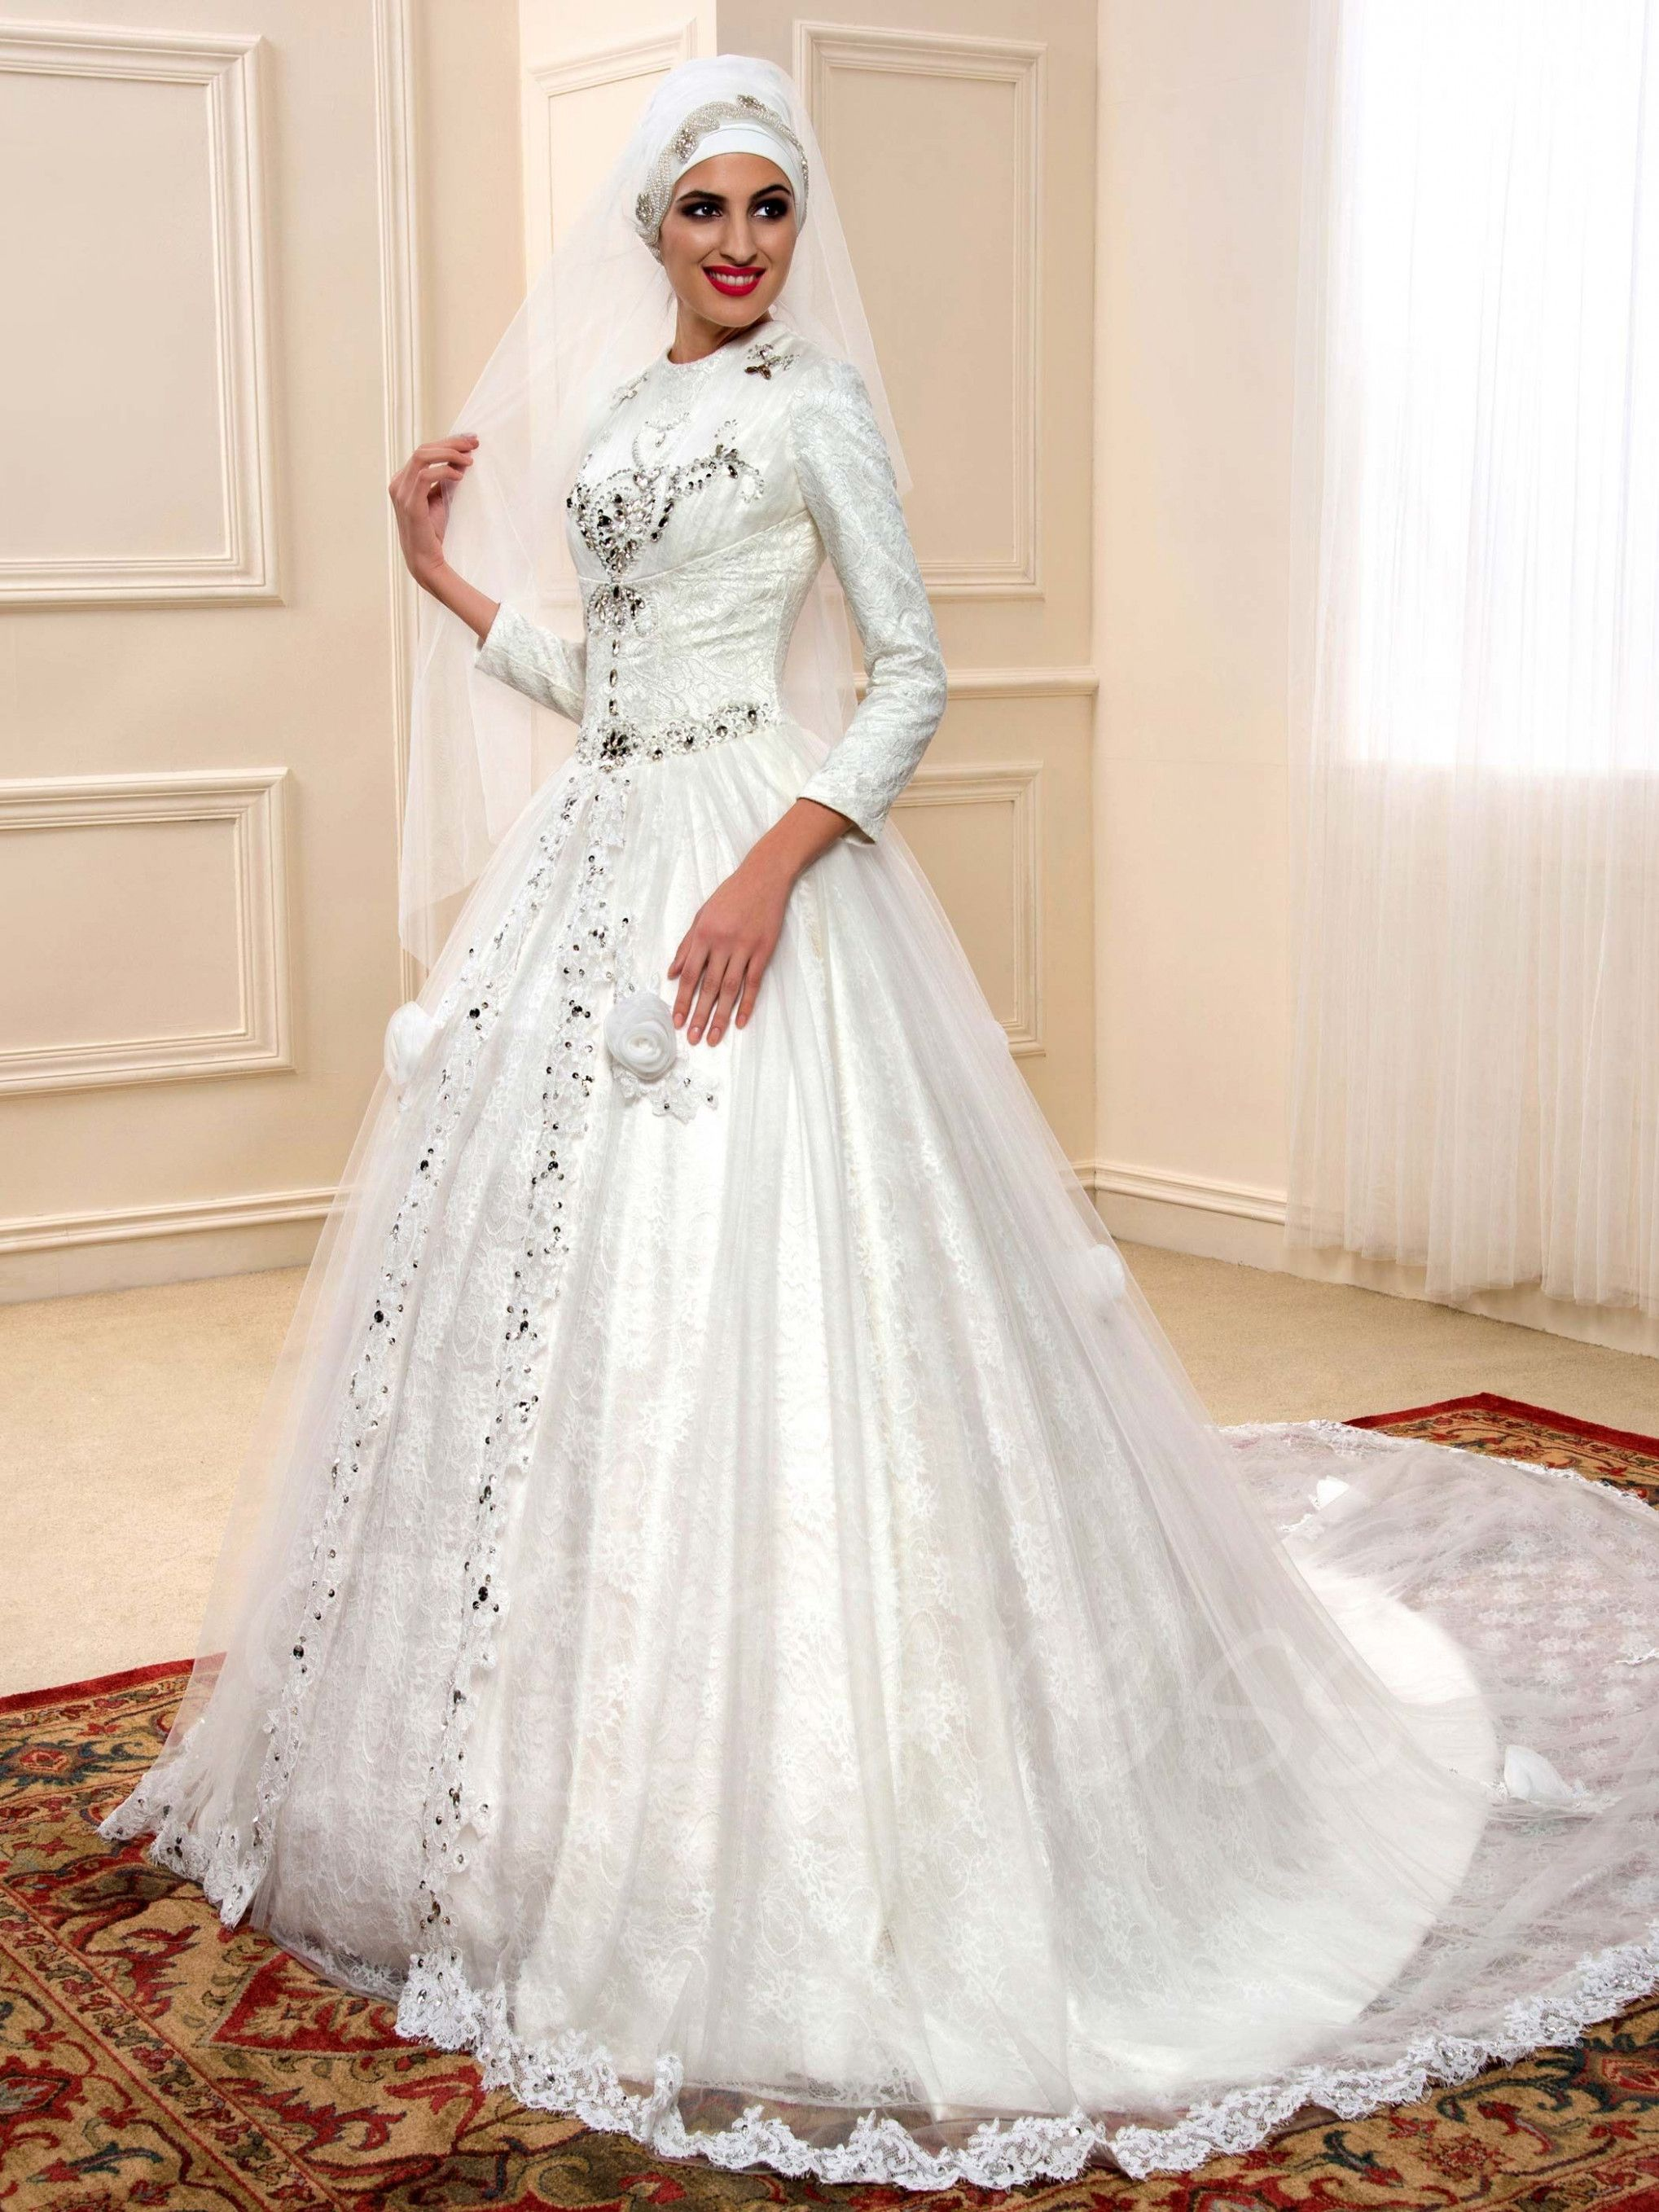 Wedding decorations muslim  Muslim Wedding Gowns Chapel Train  indoor wedding  Pinterest